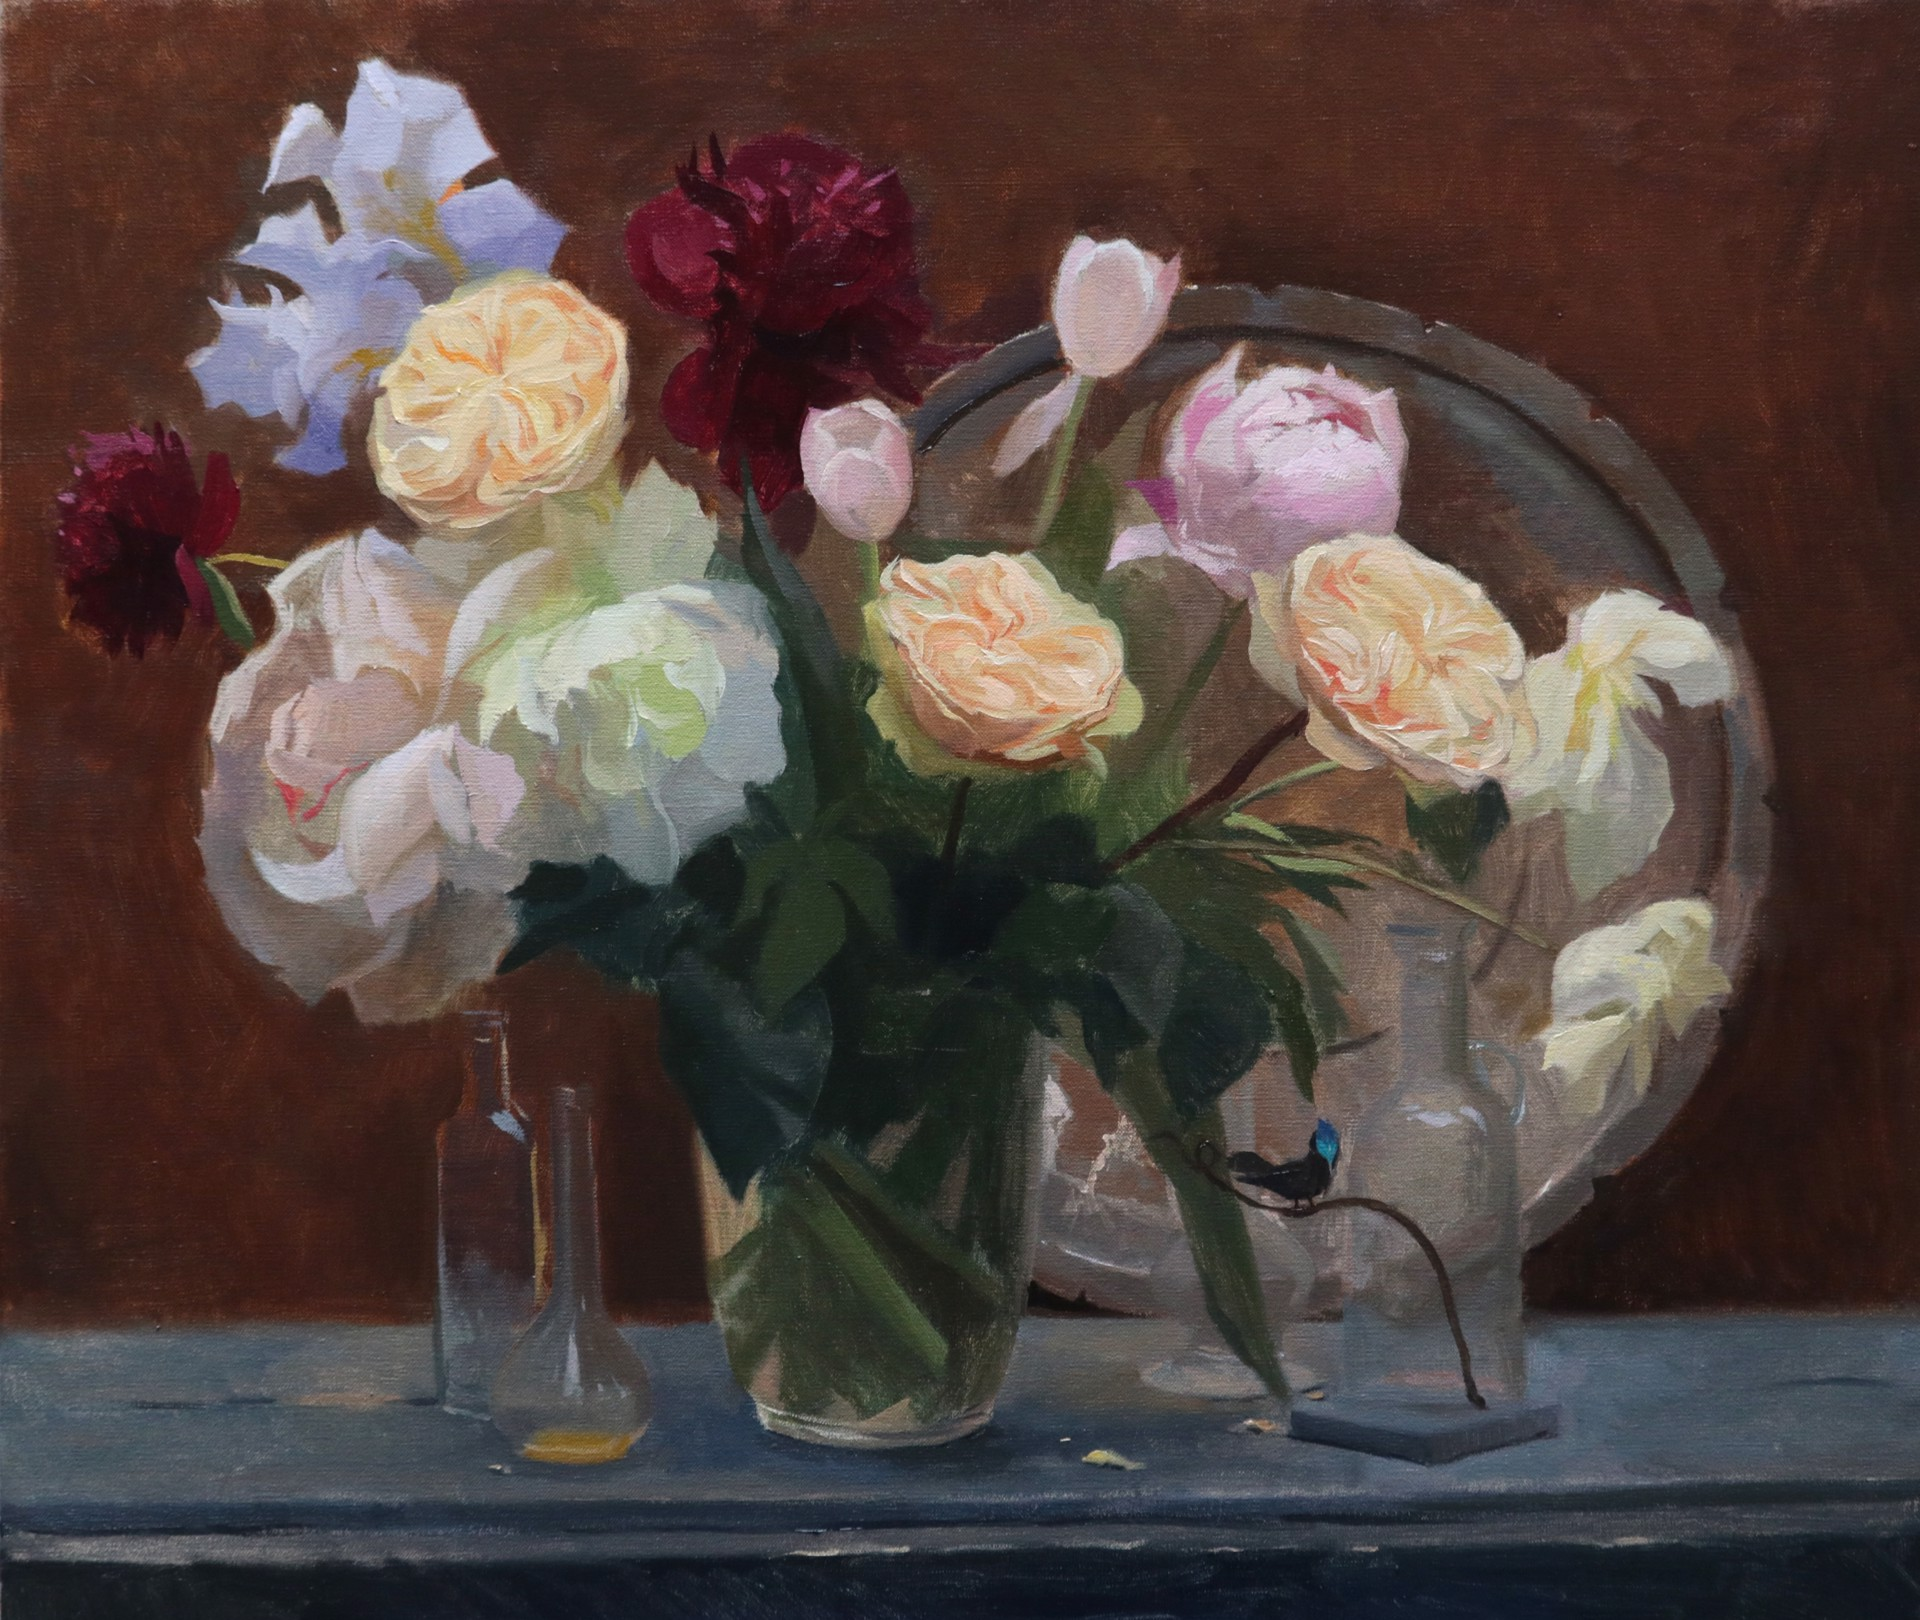 Of Roses and Peonies by Tanvi Pathare